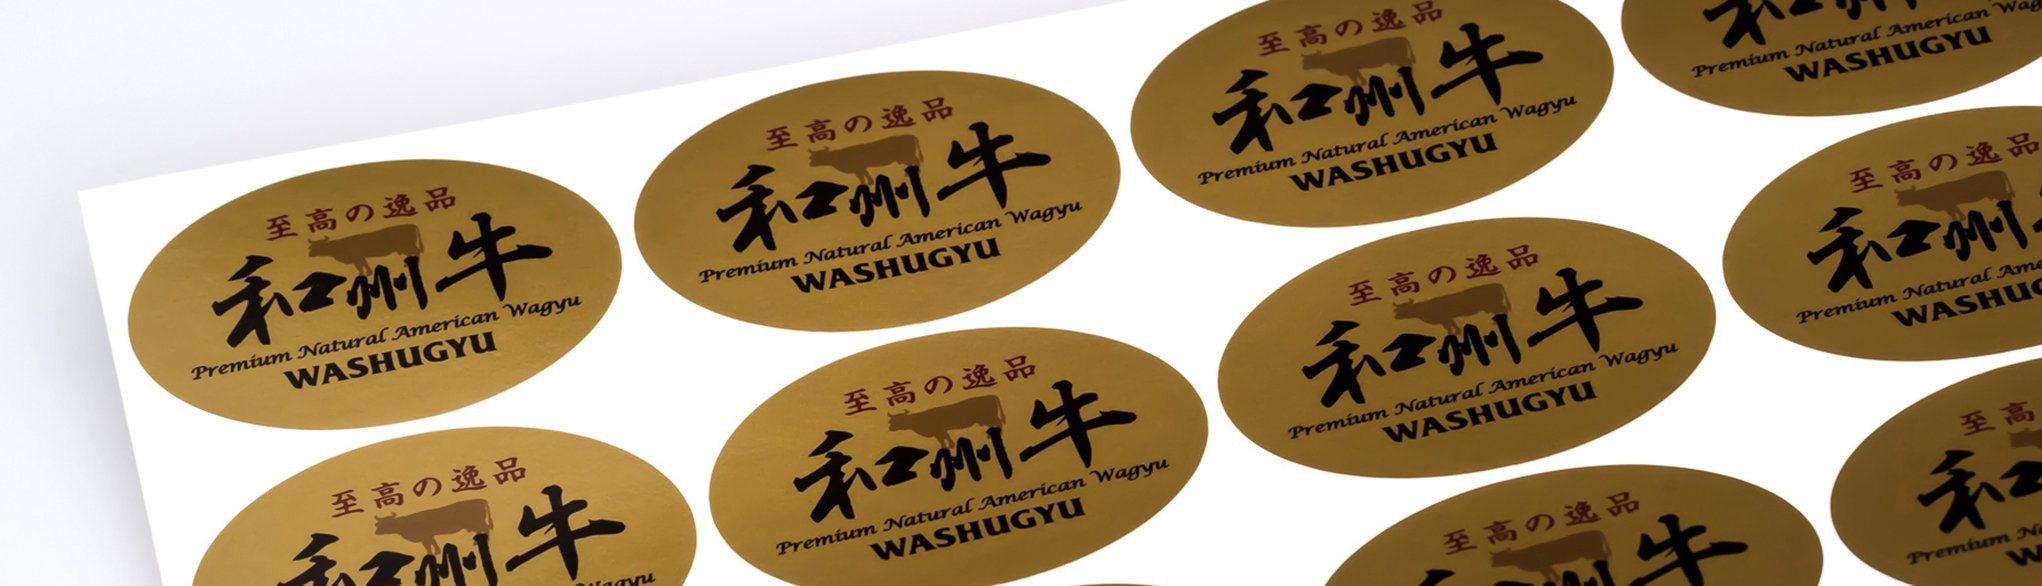 Labels with a Gold Metallic Finish